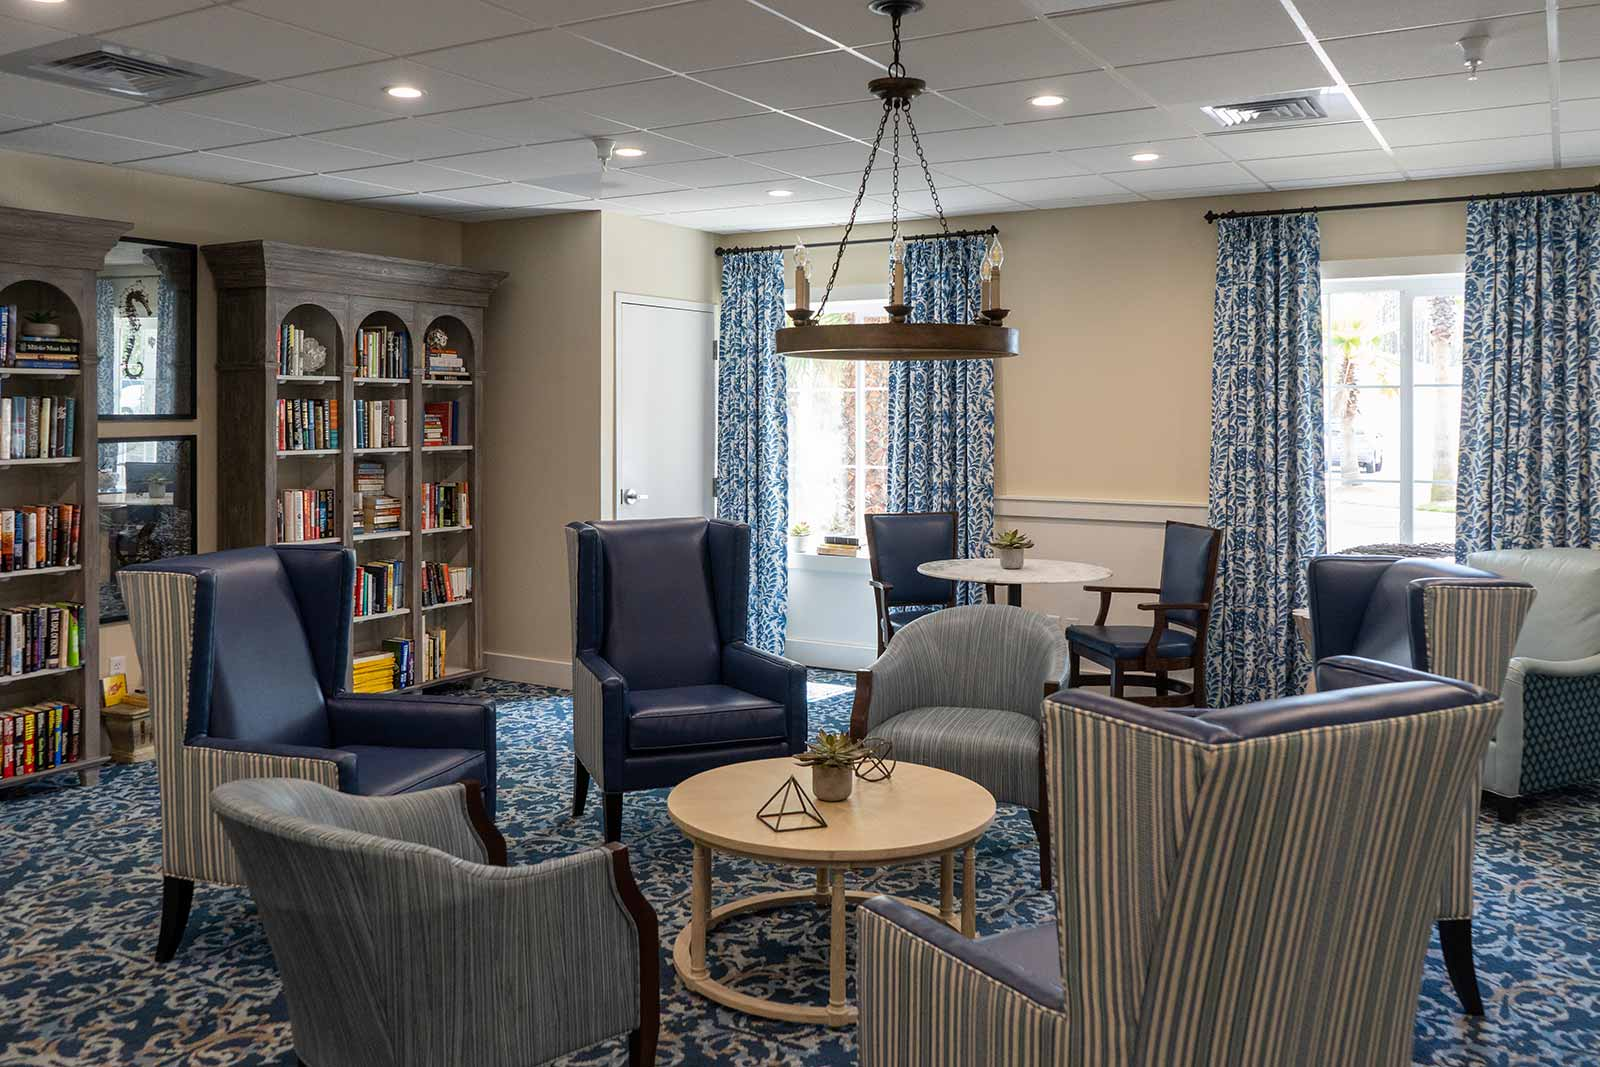 Library With Comfortable Chairs And Couches For Reading At Seagrass Village Of Panama City Beach